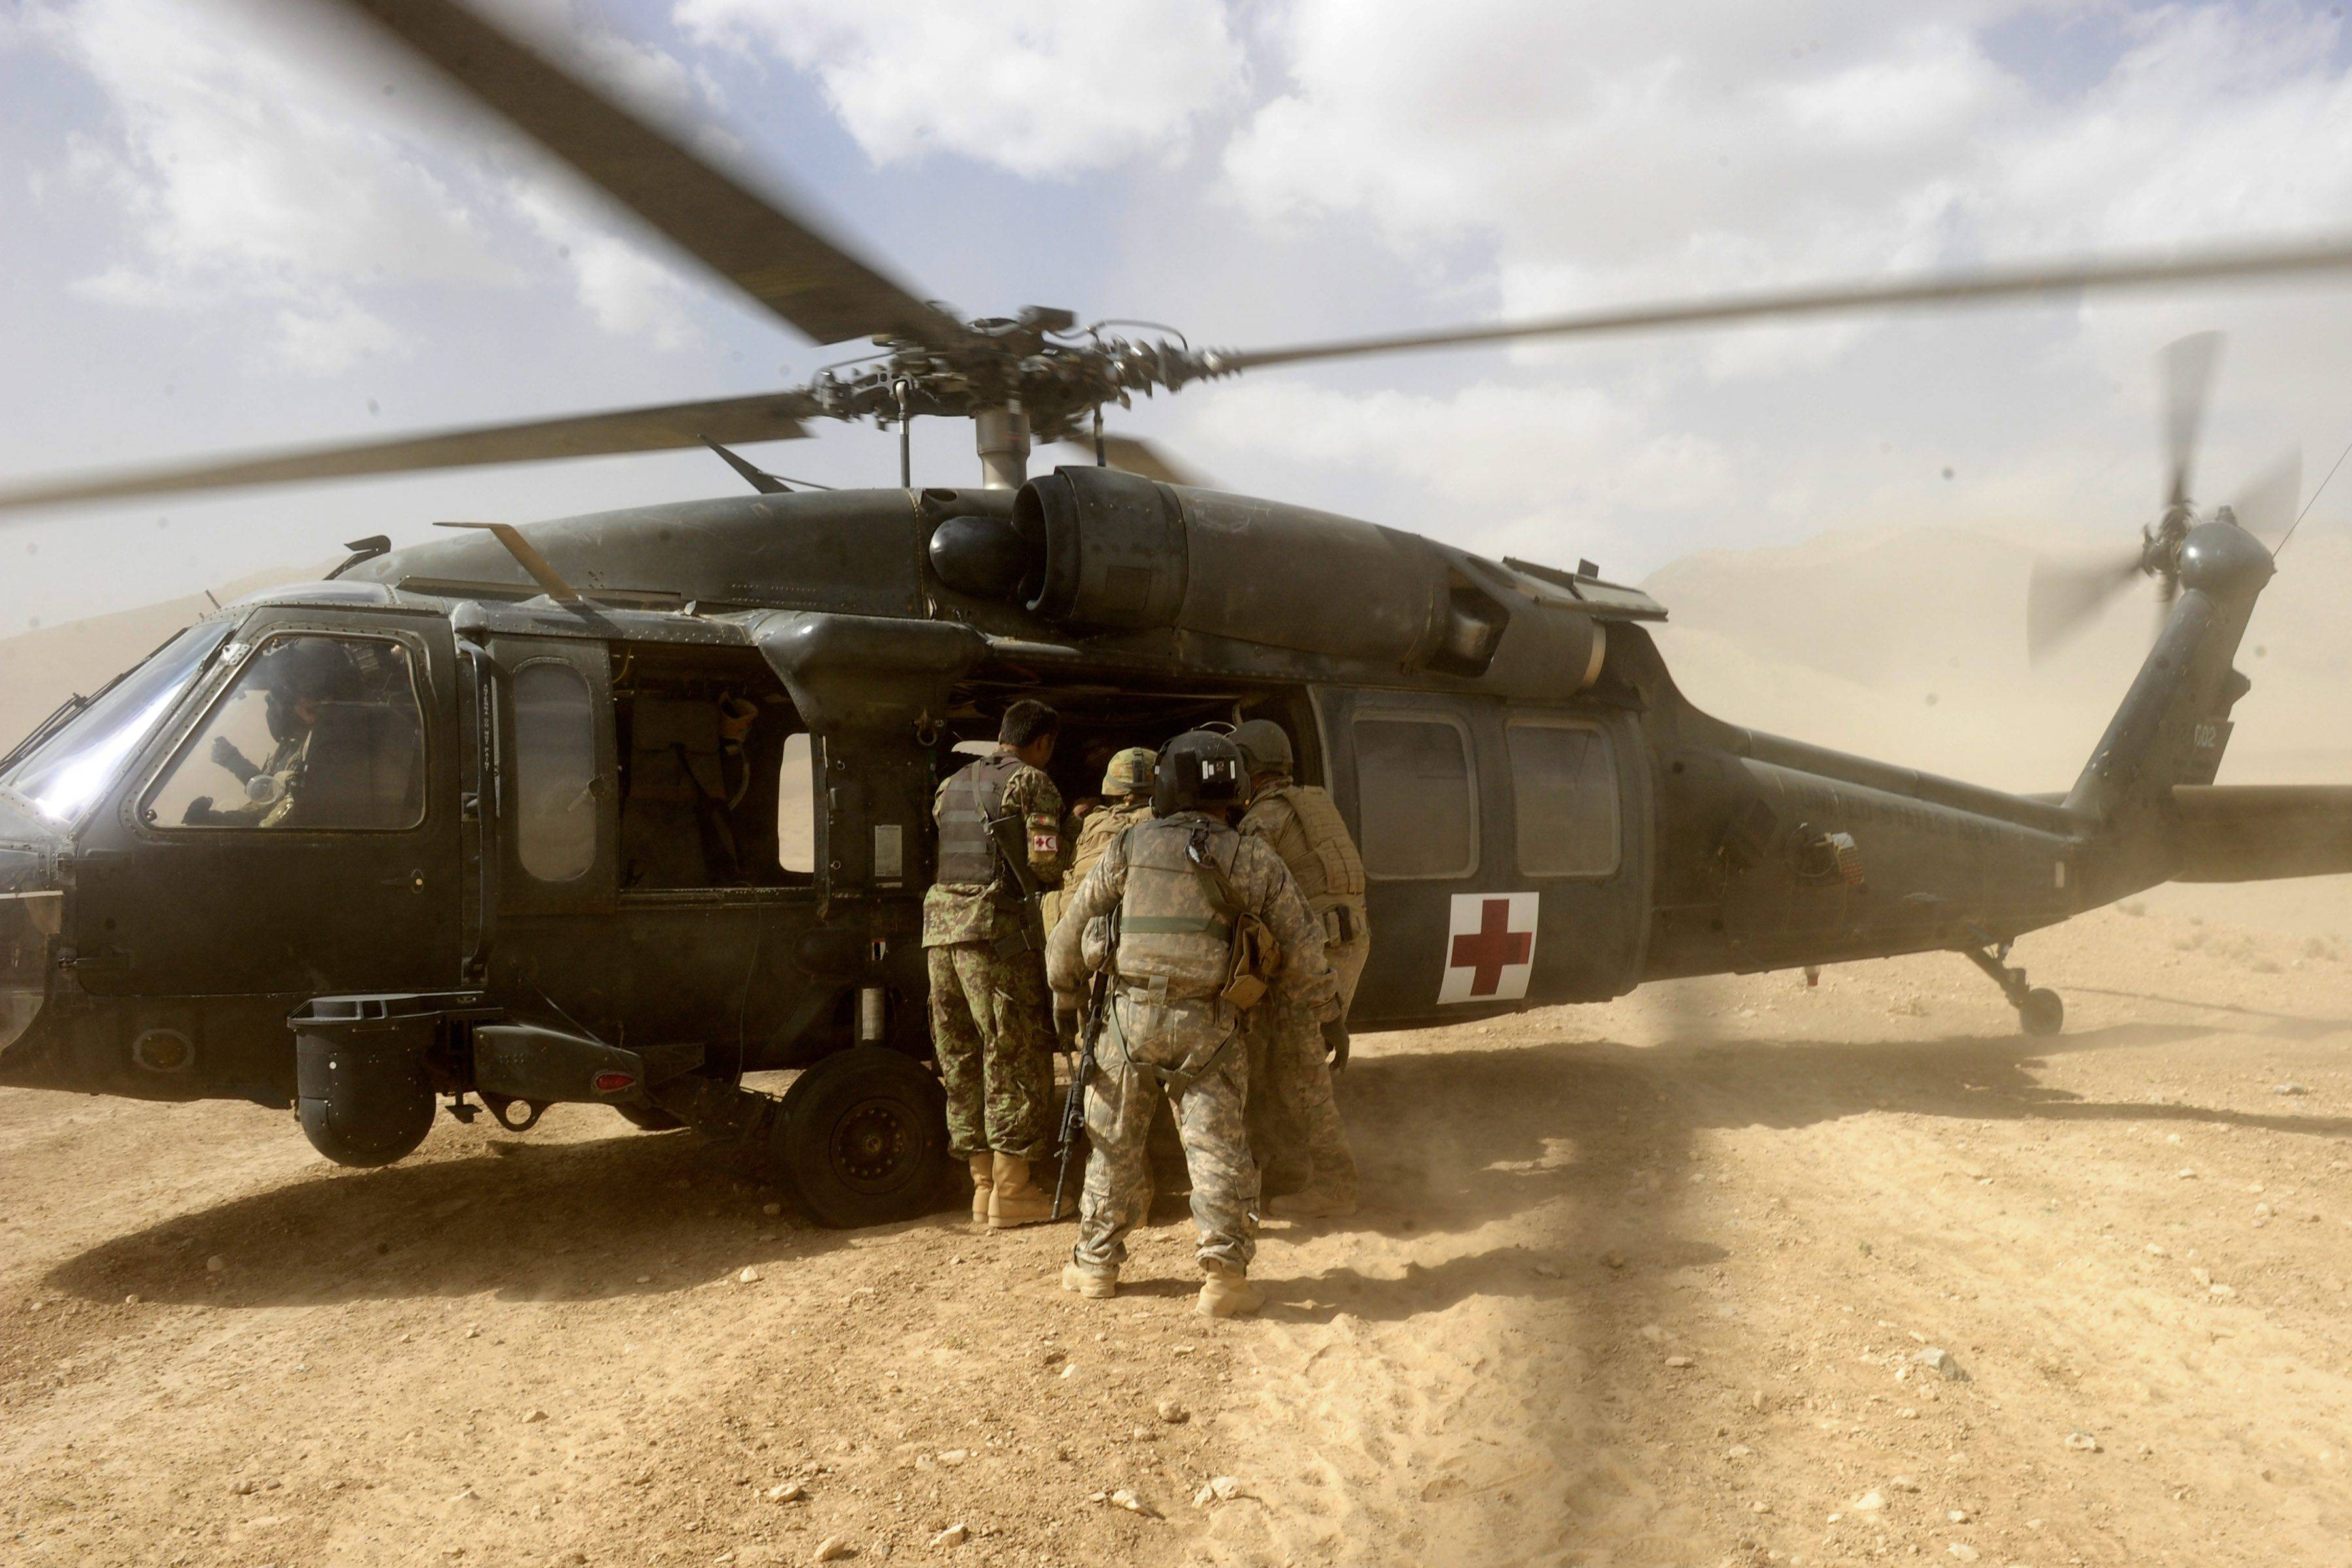 Three injured soldiers from Mentoring Task Force – Three (MTF-3) are Aero medical Evacuated (AME) to the medical facilities in Tarin Kot, after an Improvised Explosive Device (IED) attack on a Protected Mobility Vehicle Bushmaster, during a route clearance in the Chora Valley, Southern Afghanistan.